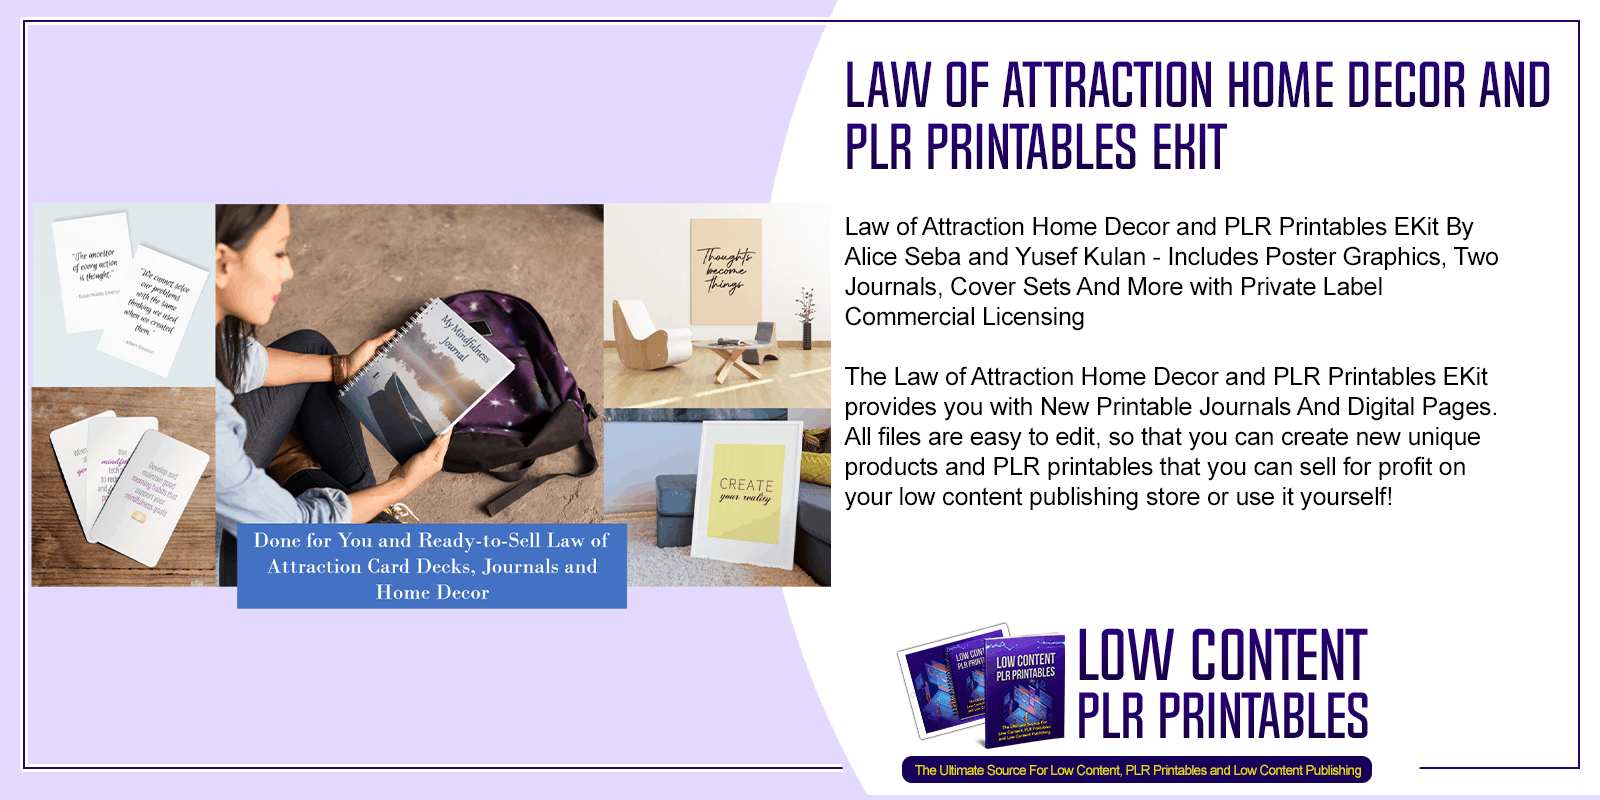 Law of Attraction Home Decor and PLR Printables EKit